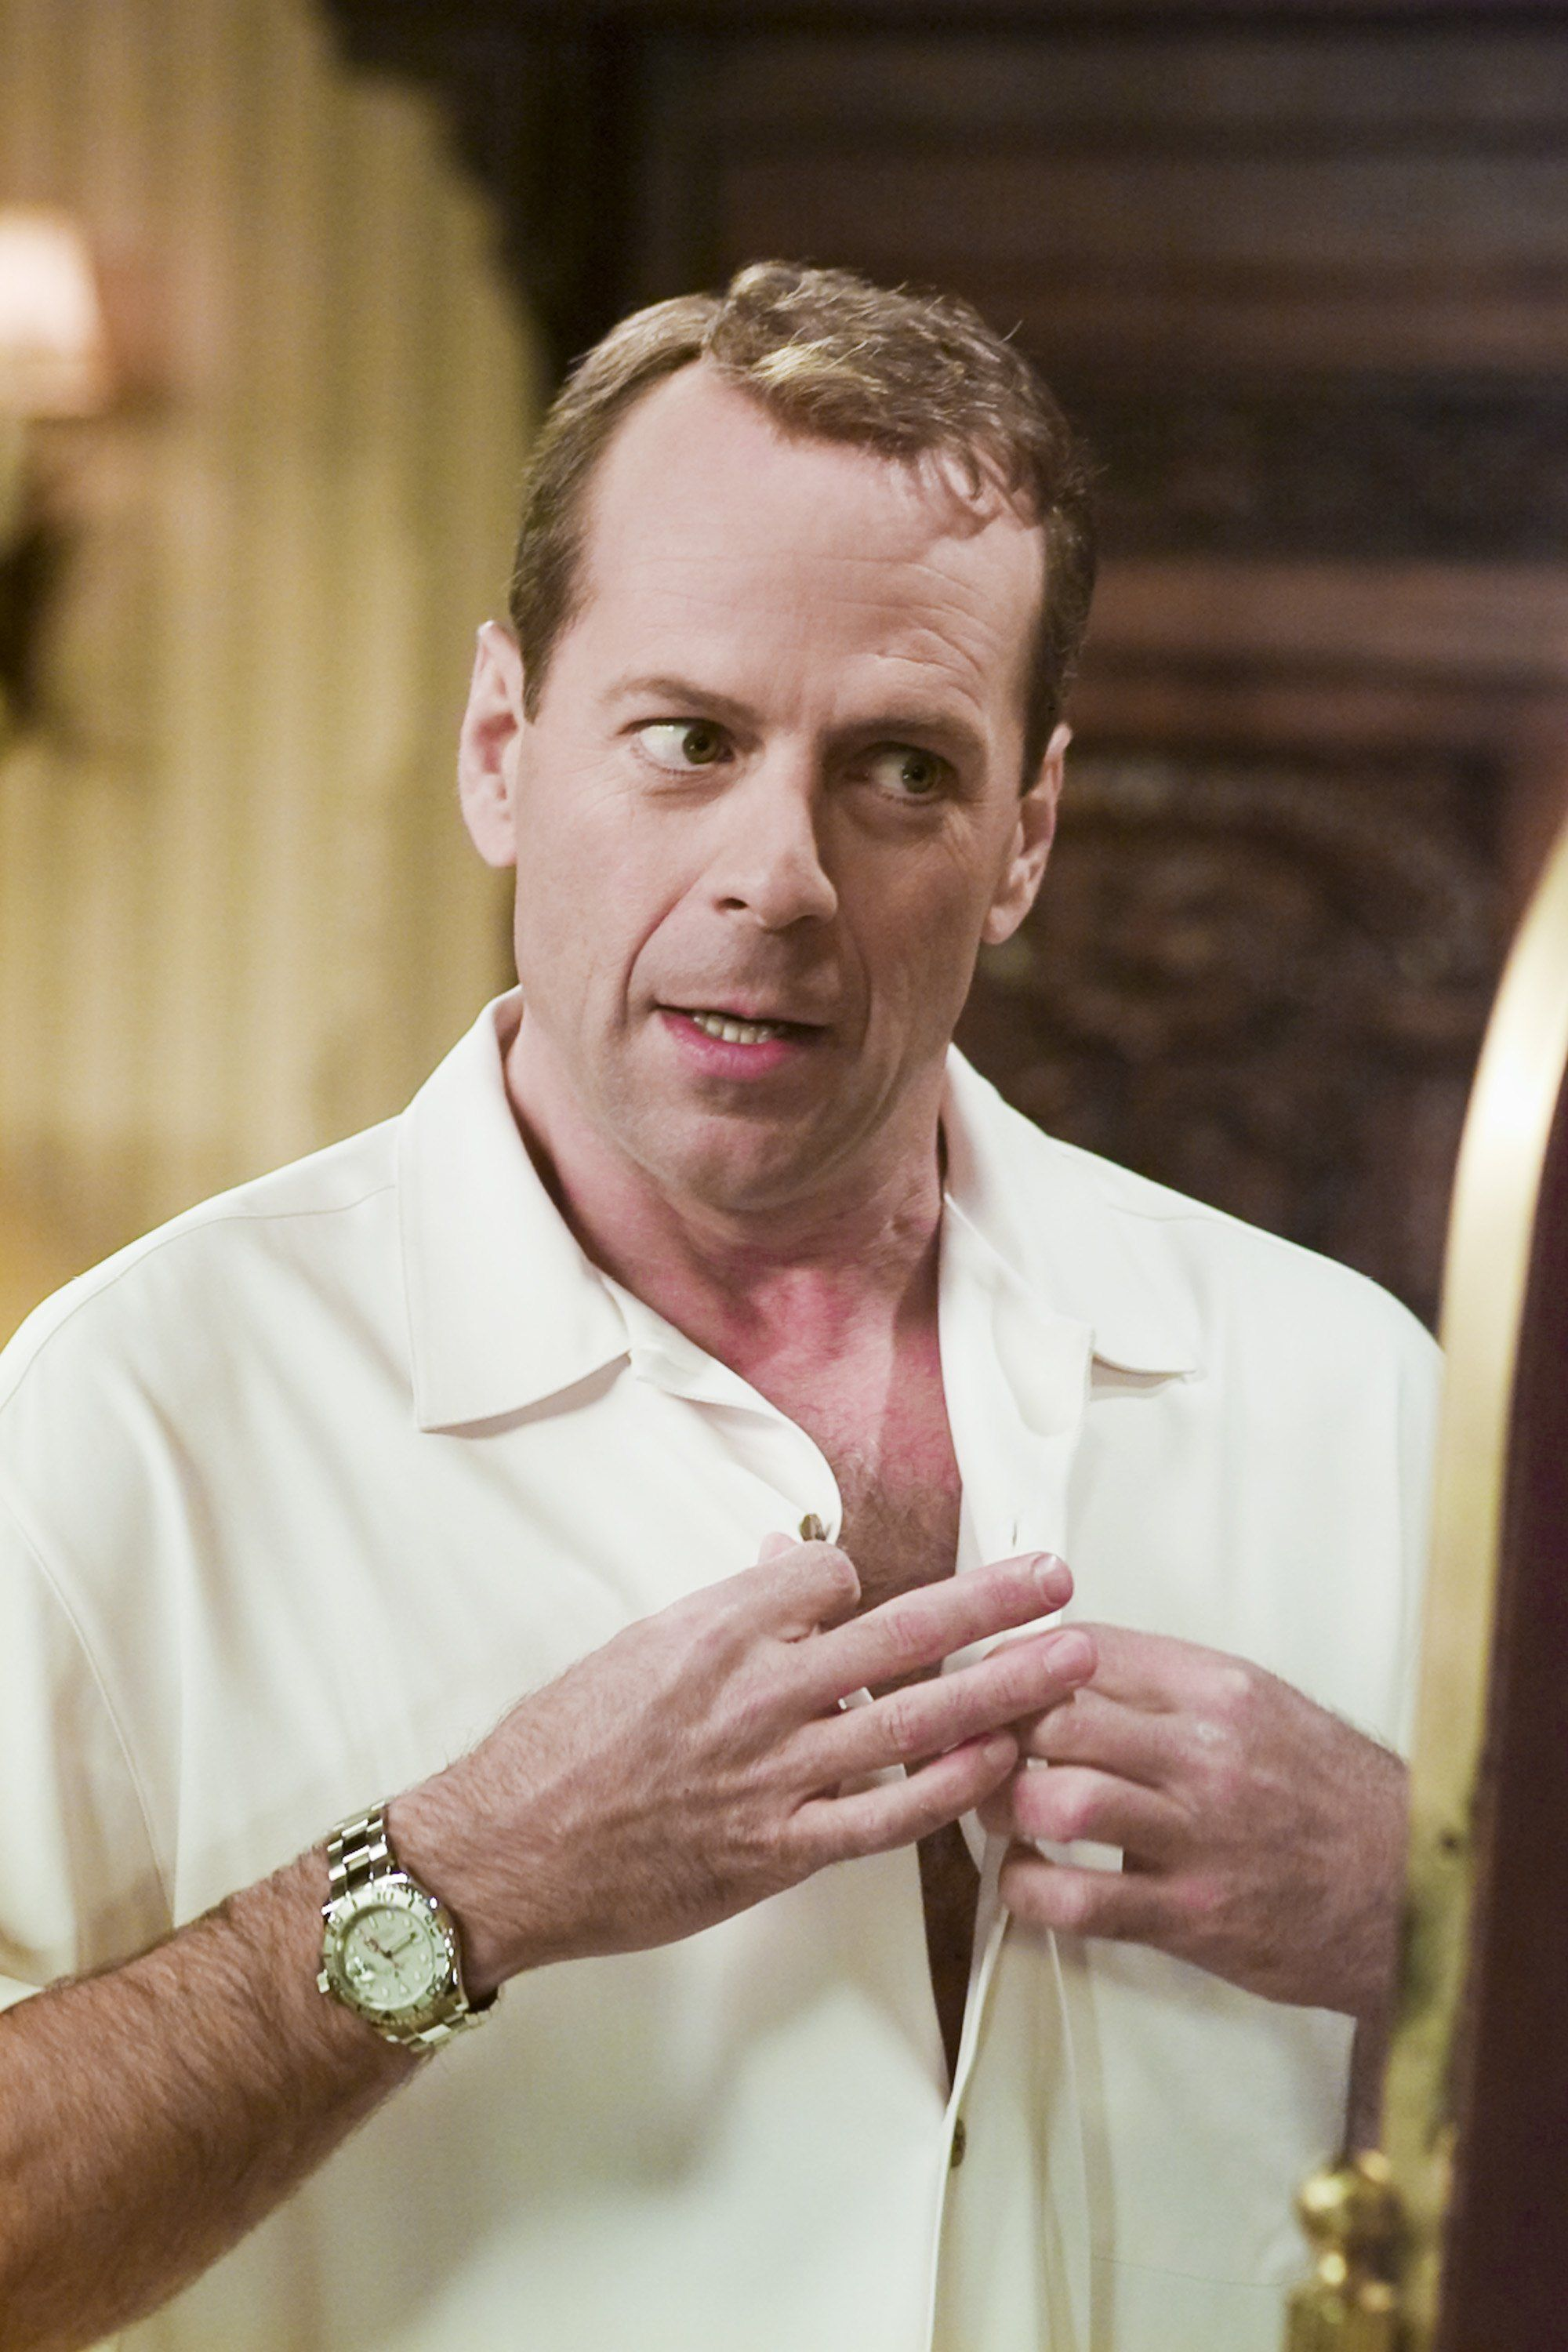 Bruce Willis guest starred on the show after losing a bet.